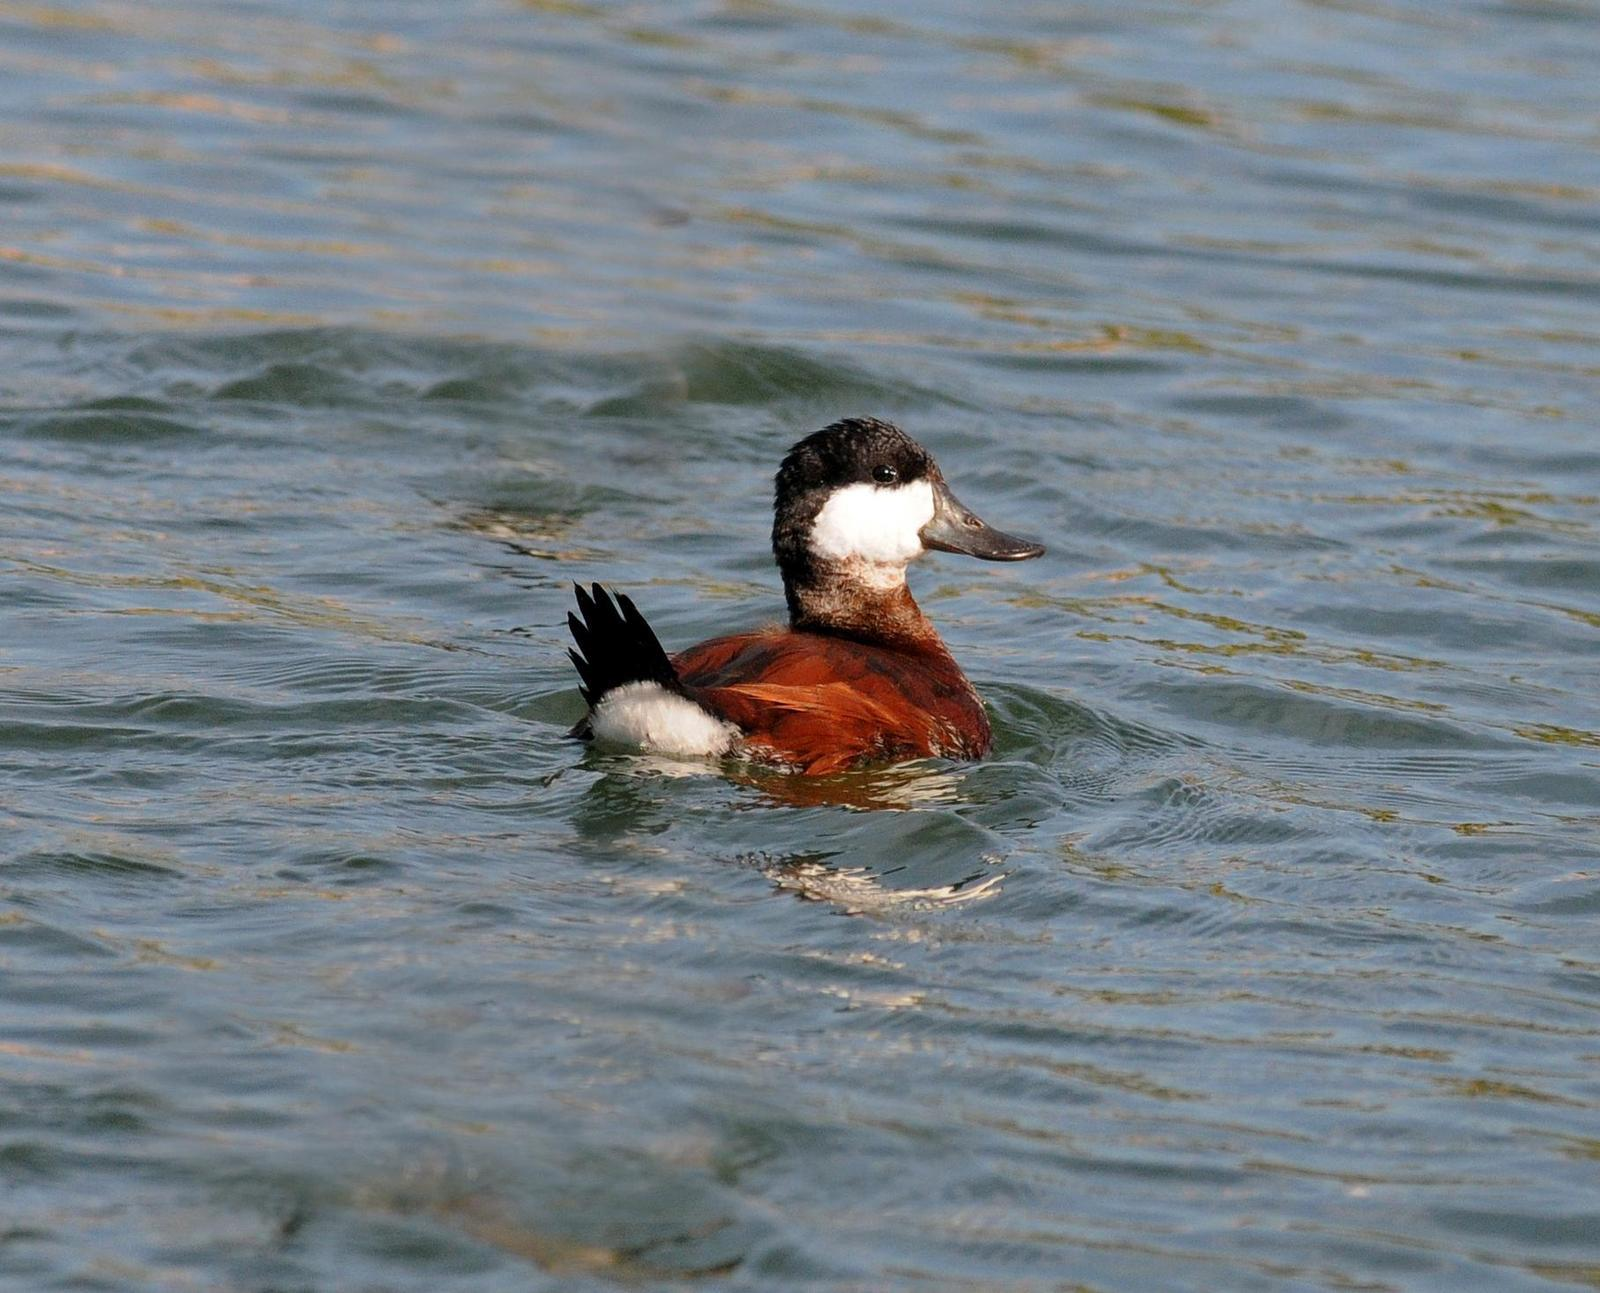 Ruddy Duck Photo by Steven Mlodinow